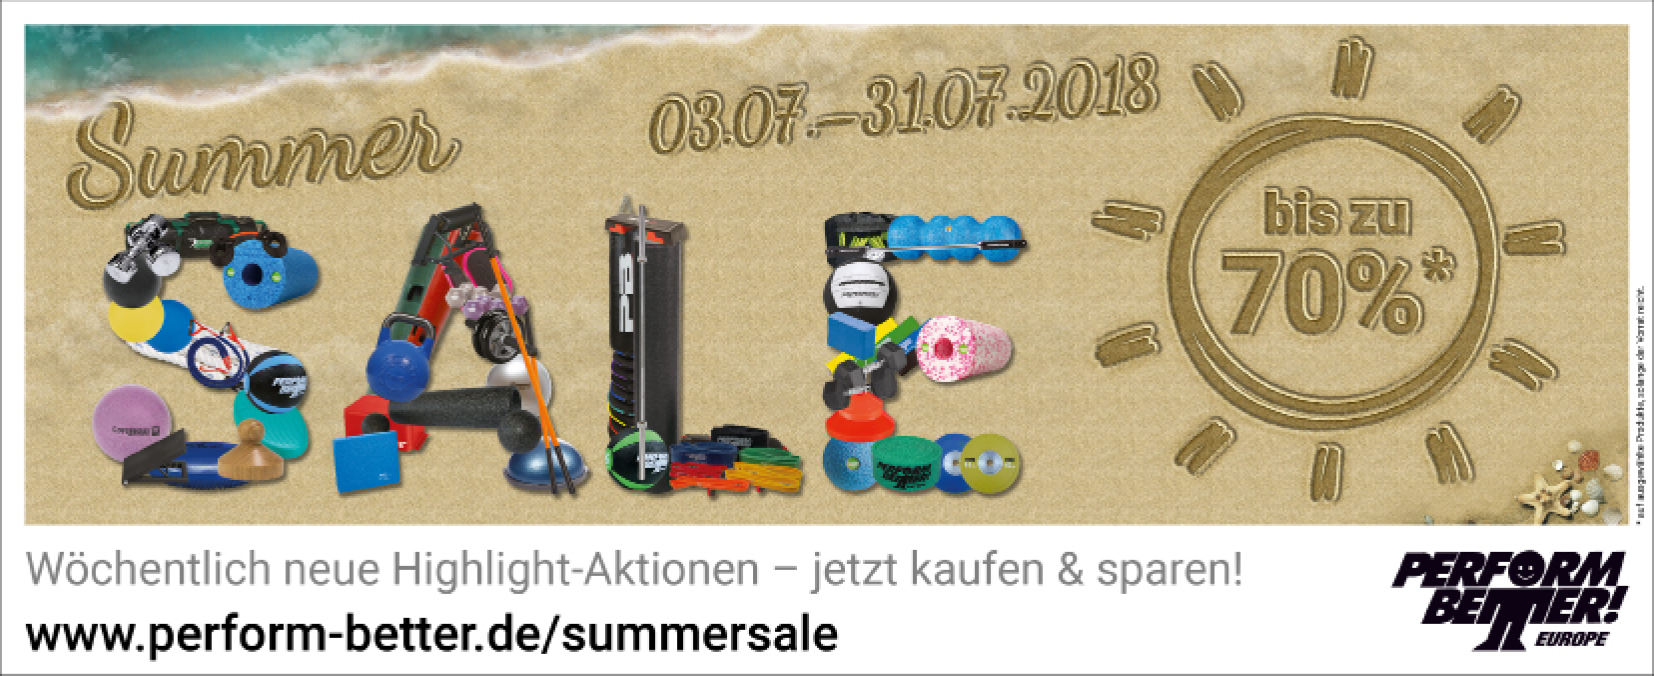 Summer Sale bei Perform Better Europe